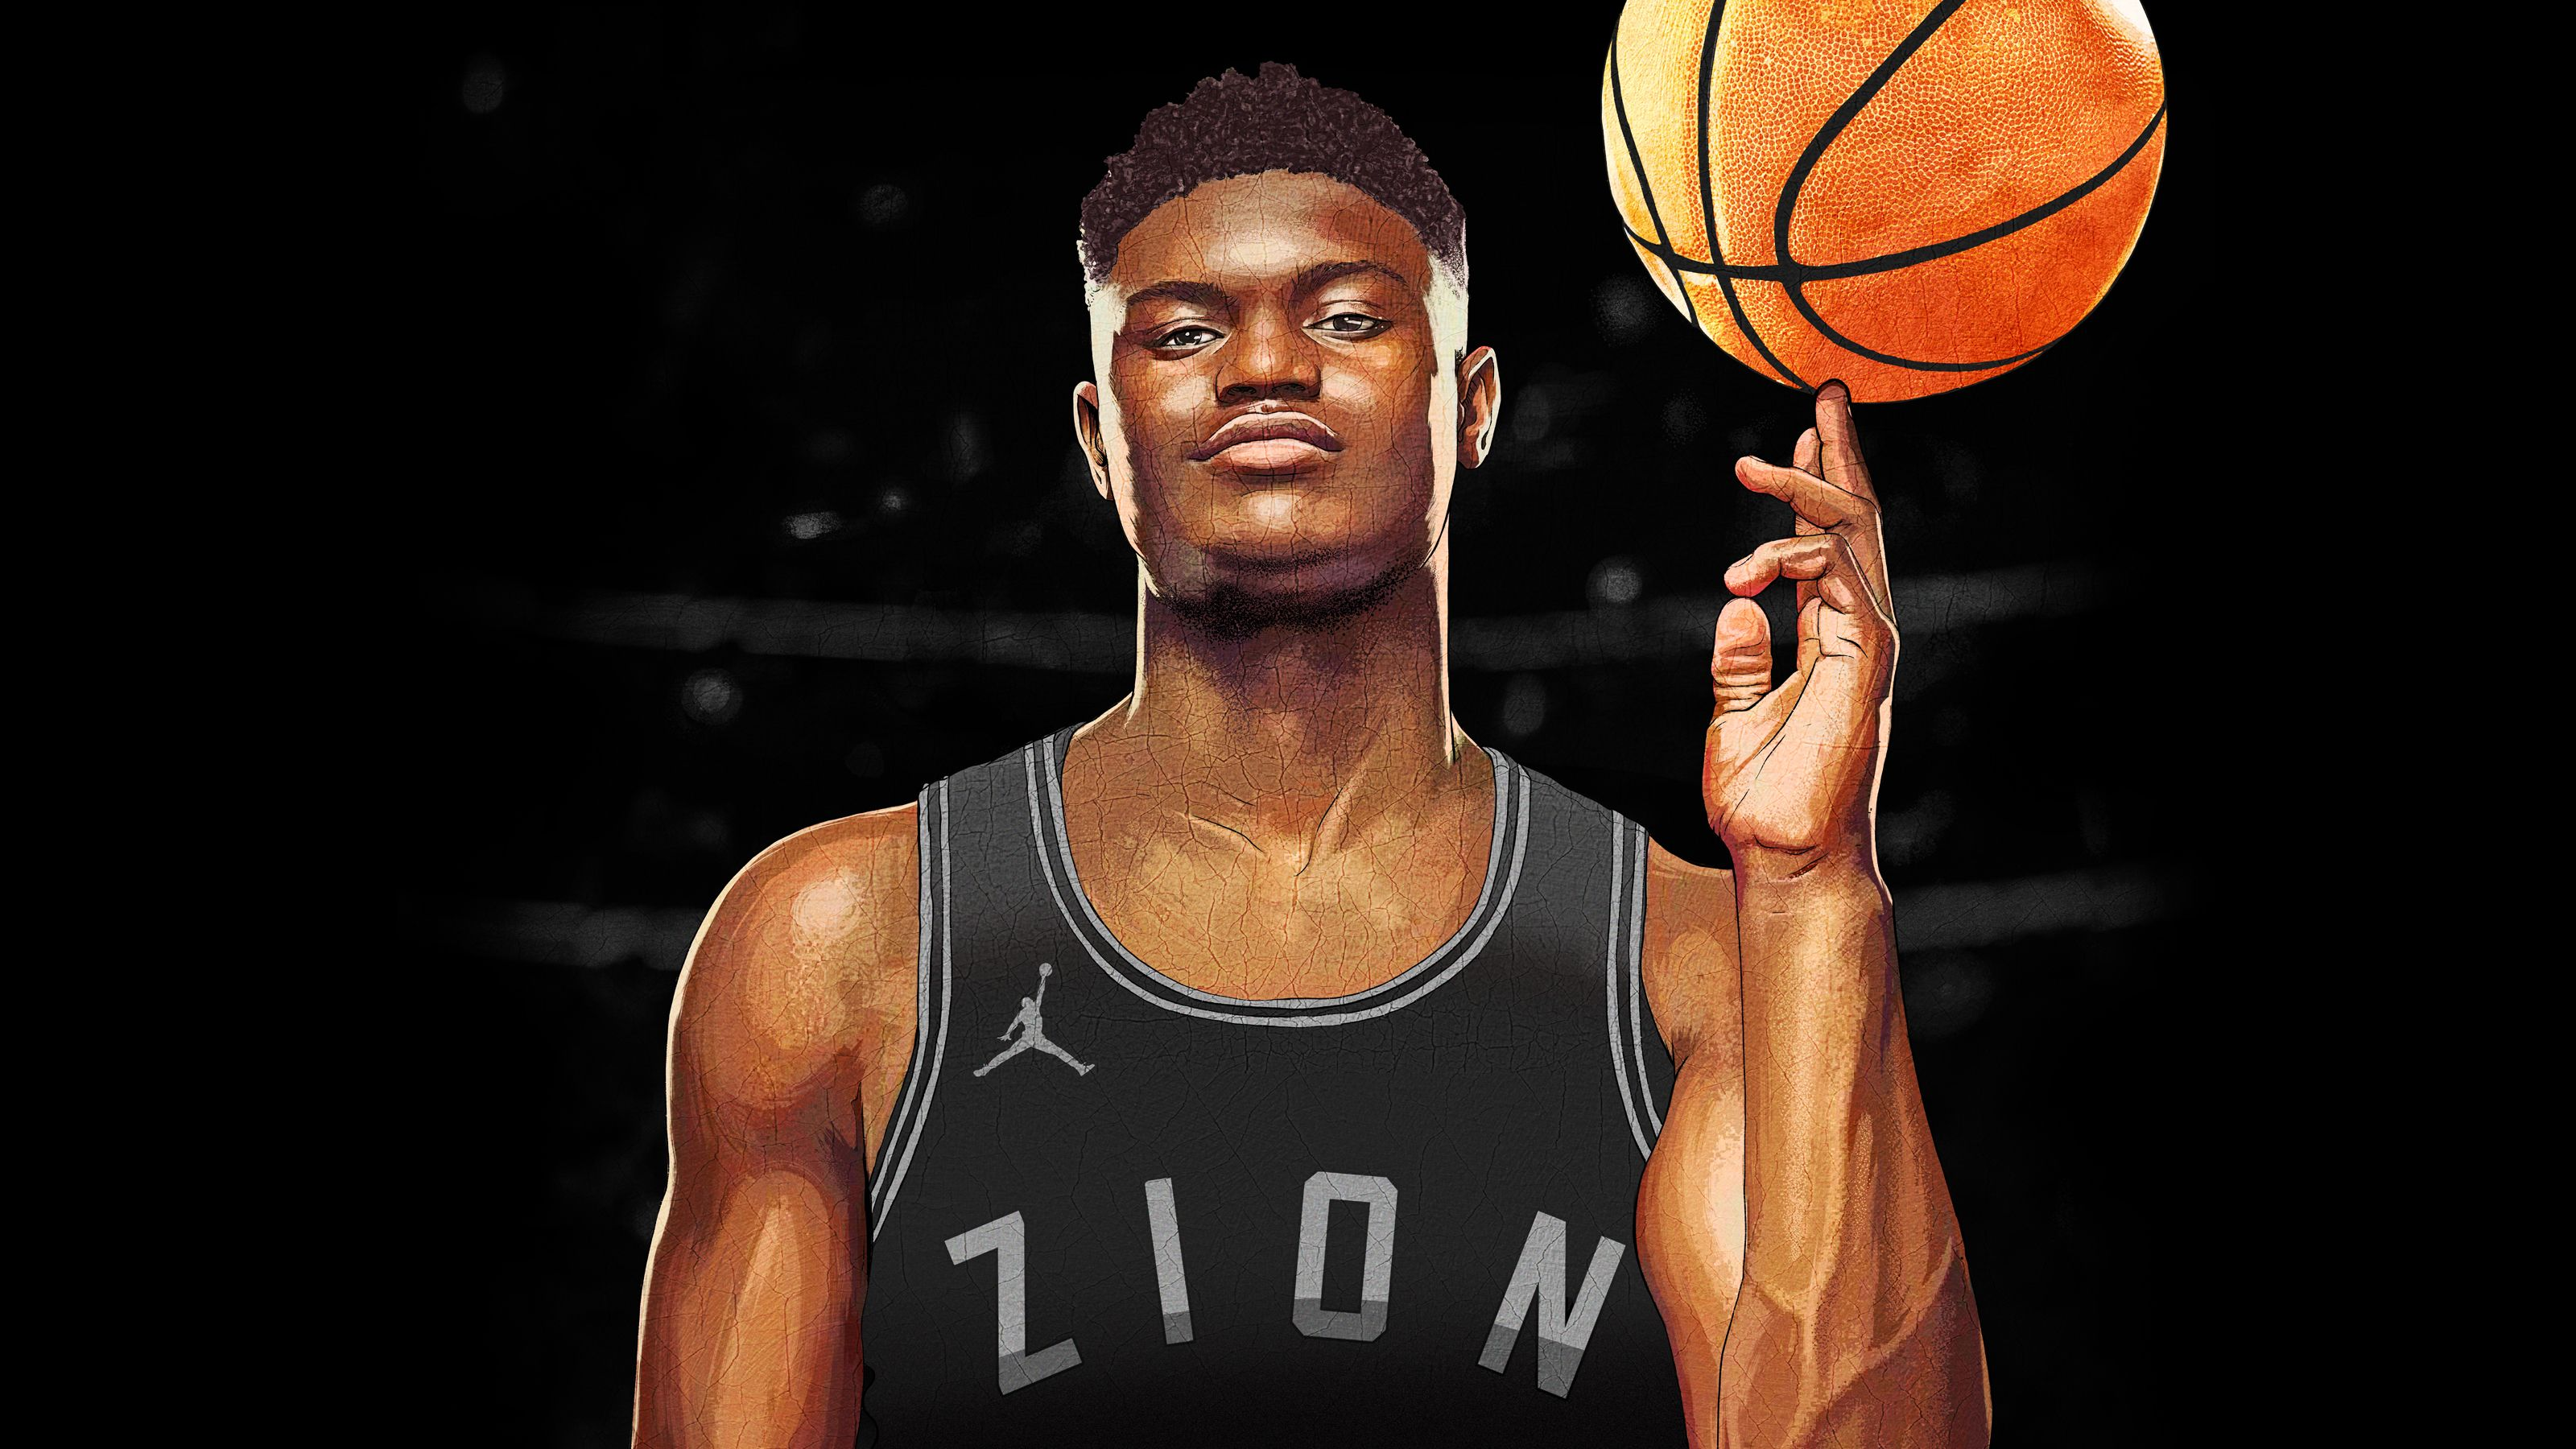 Zion Williamson Just Signed With Jordan Brand